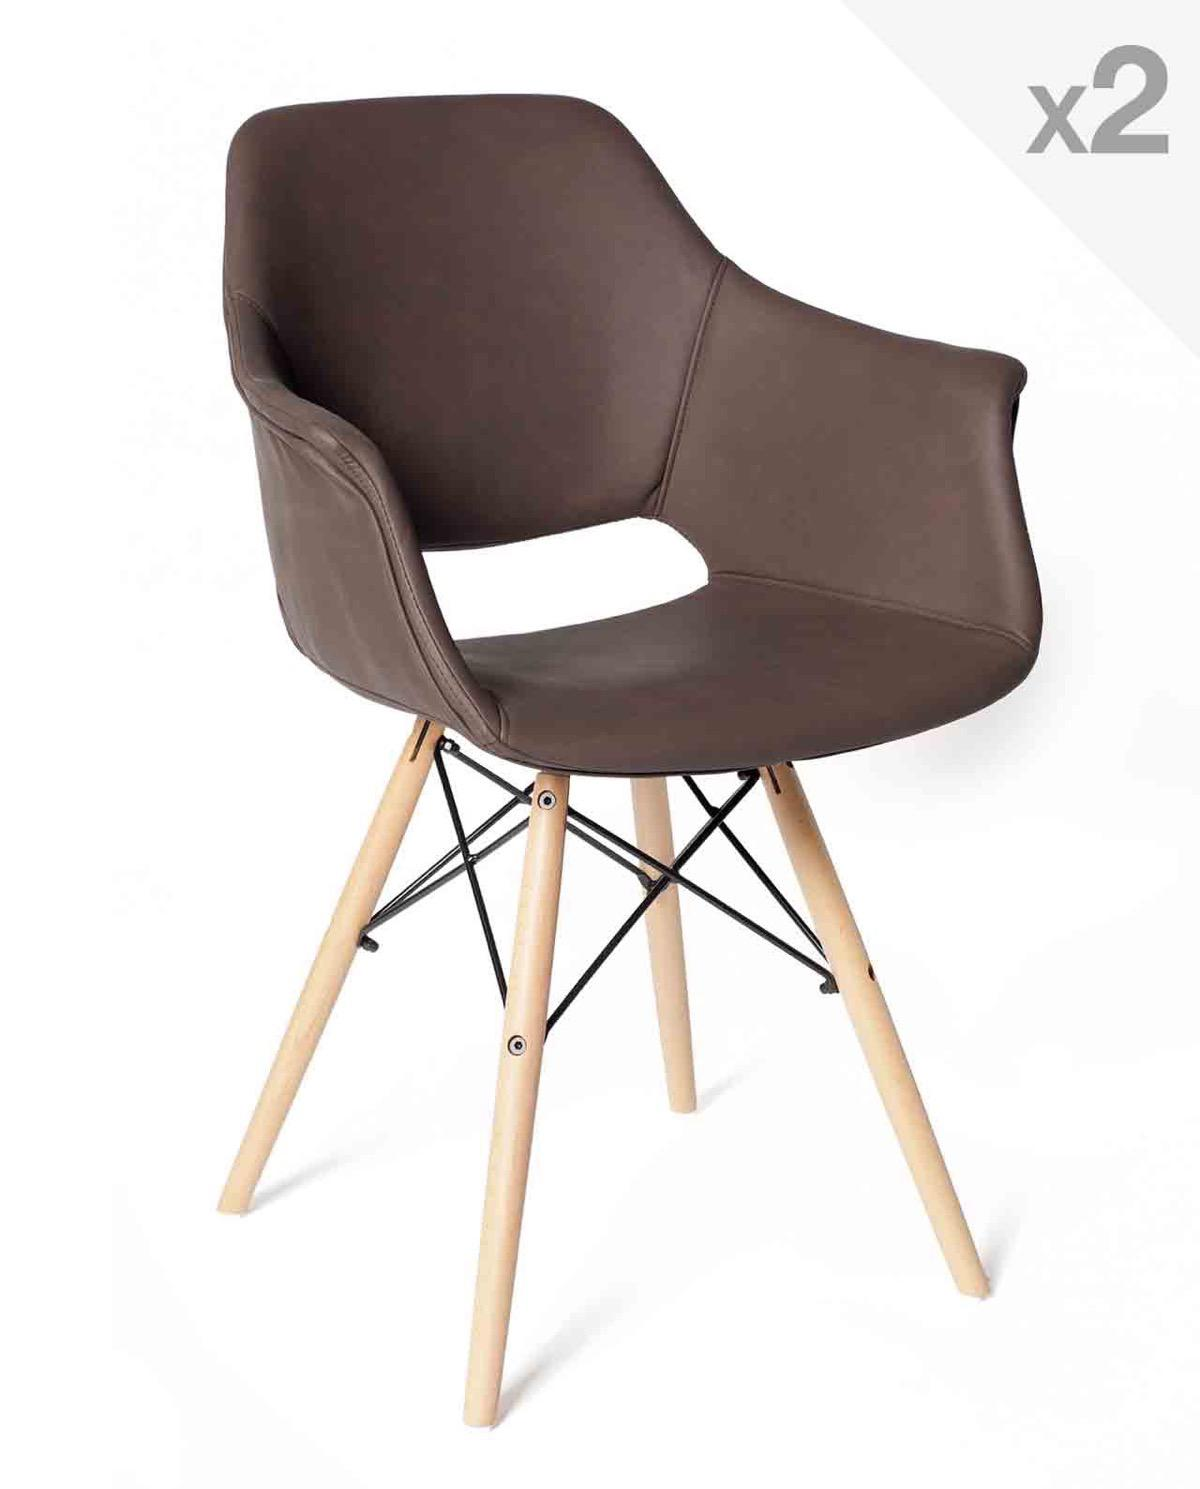 soho lot de 2 chaises scandinave avec accoudoirs kayelles marron - Chaise Scandinave